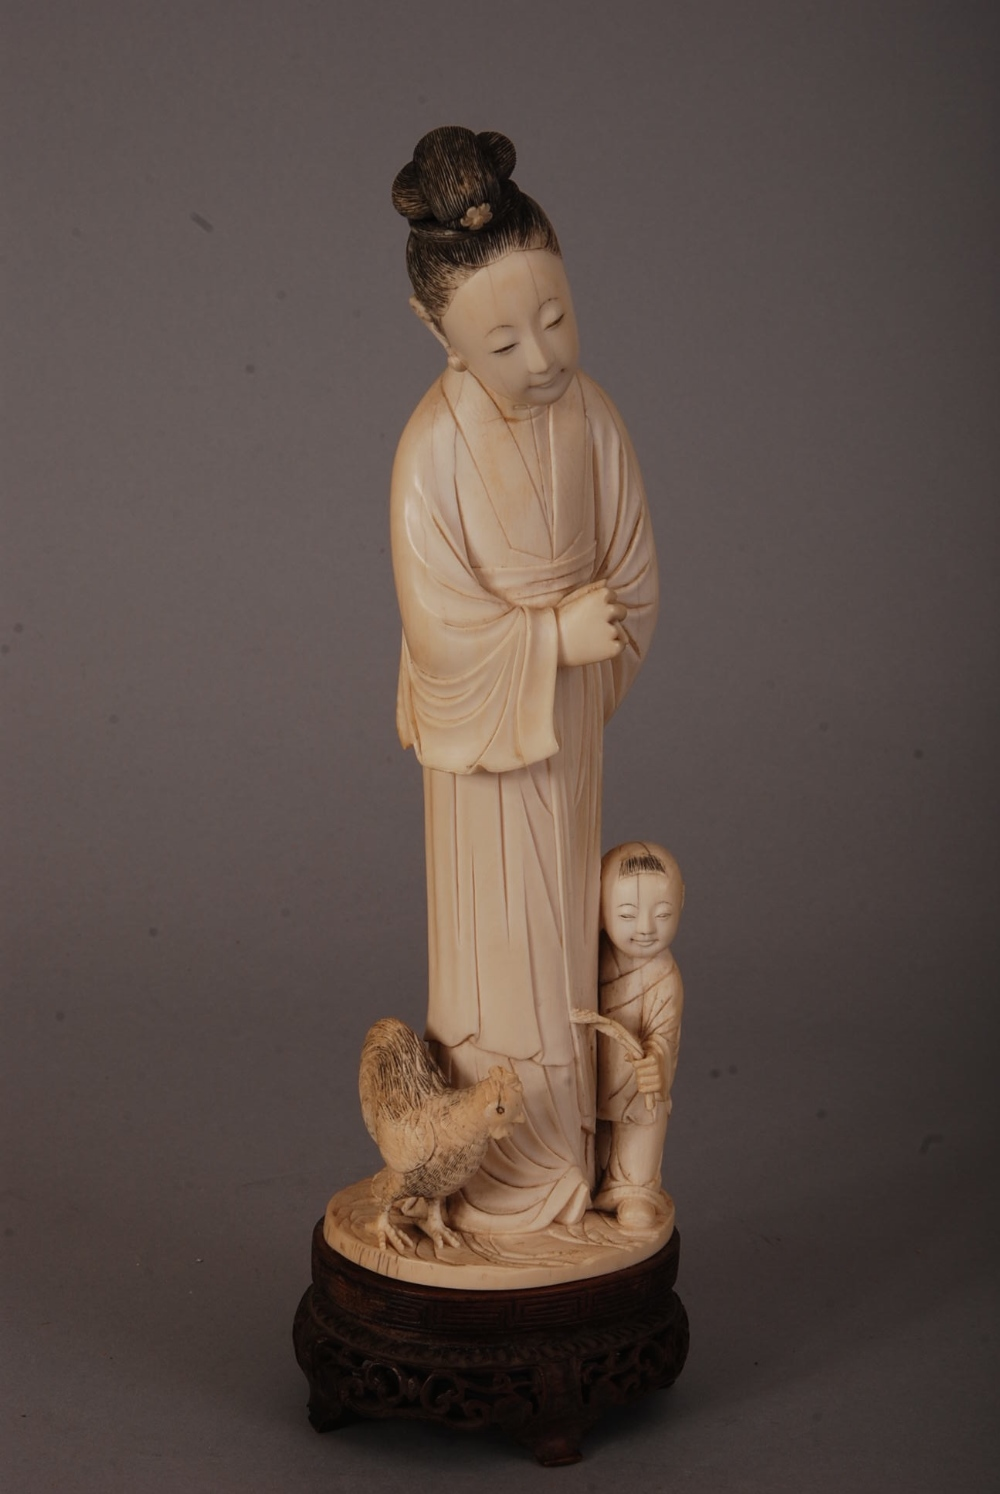 Lot 53 - C18th/19th Chinese ivory figure group of a lady and a boy, 26.5cm high, wood stand